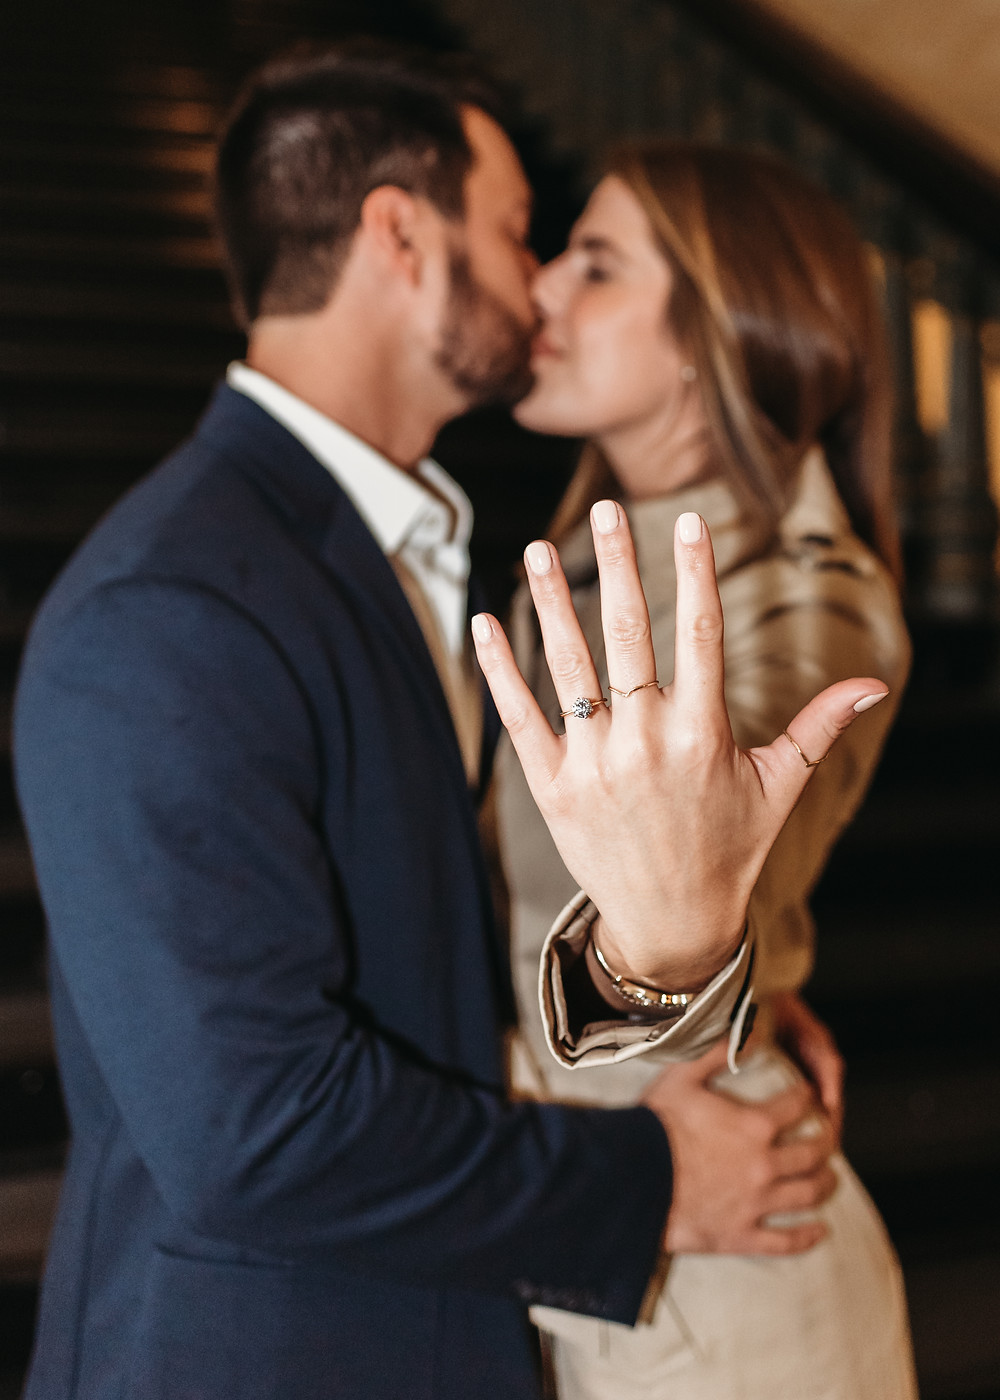 newly engaged couple showing the engagement ring to the camera while kissing